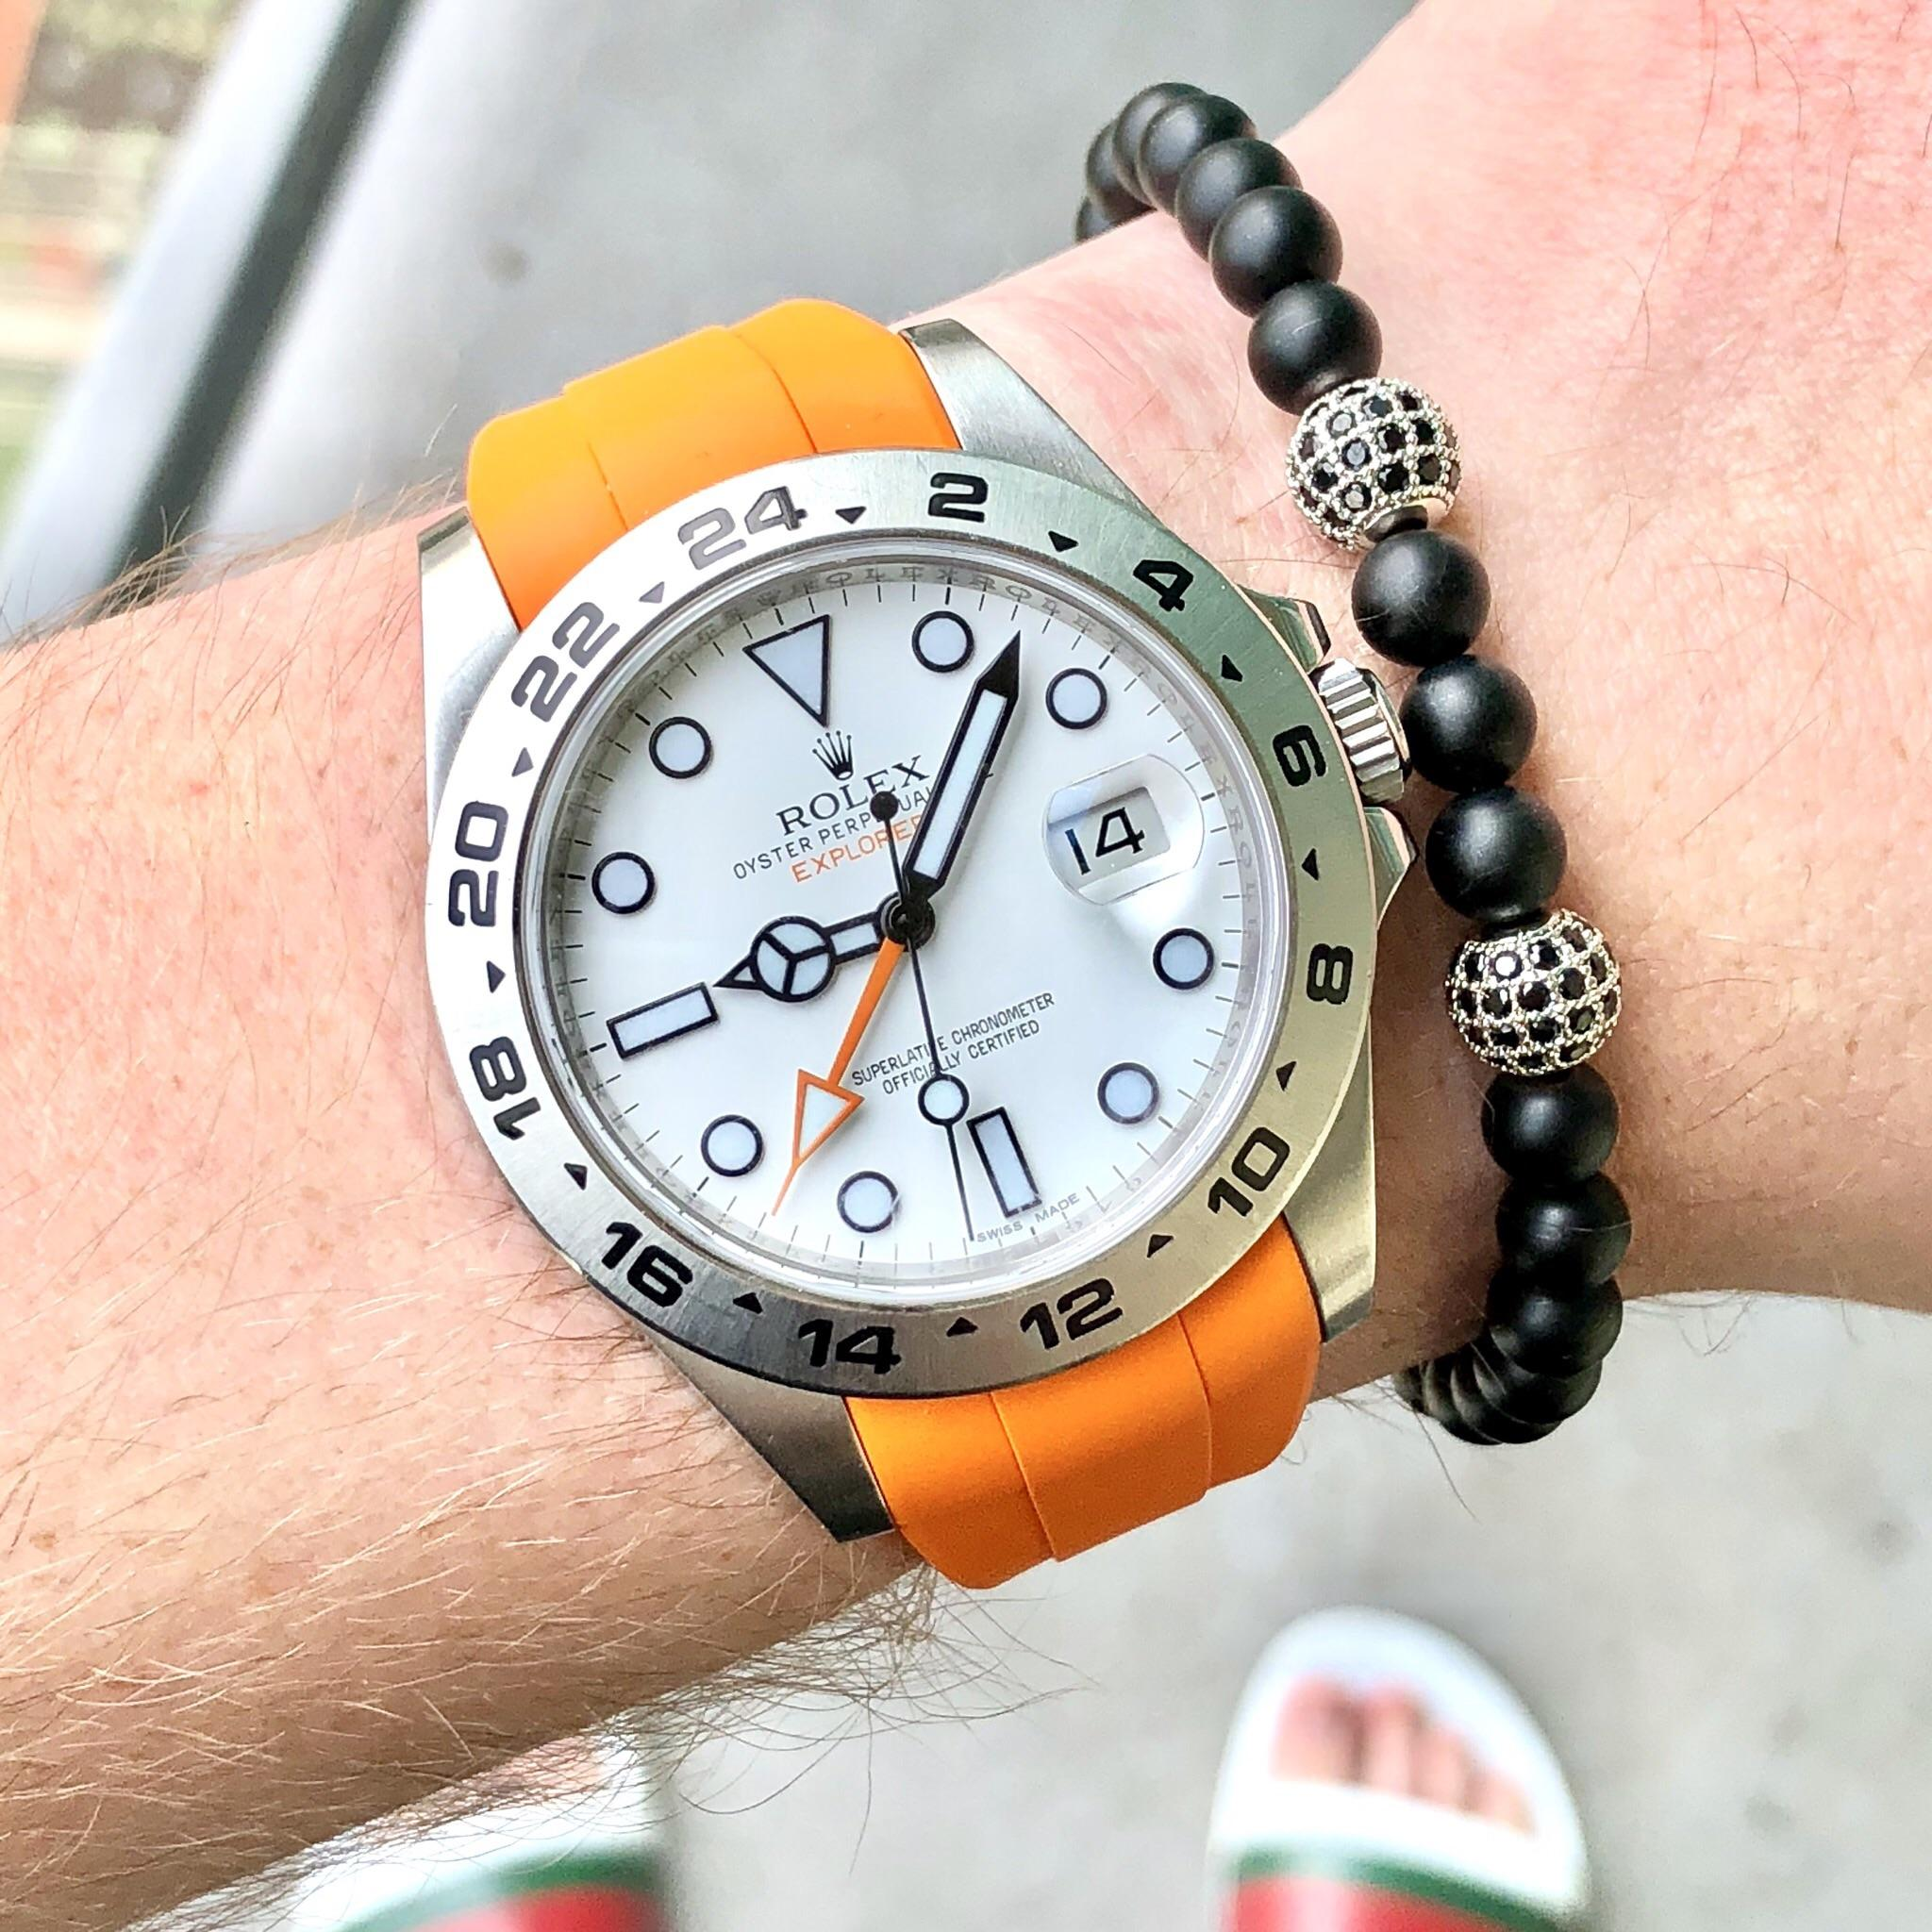 Rolex Rubber Rolex Put My Explorer 2 On An Orange Rubber B Strap For